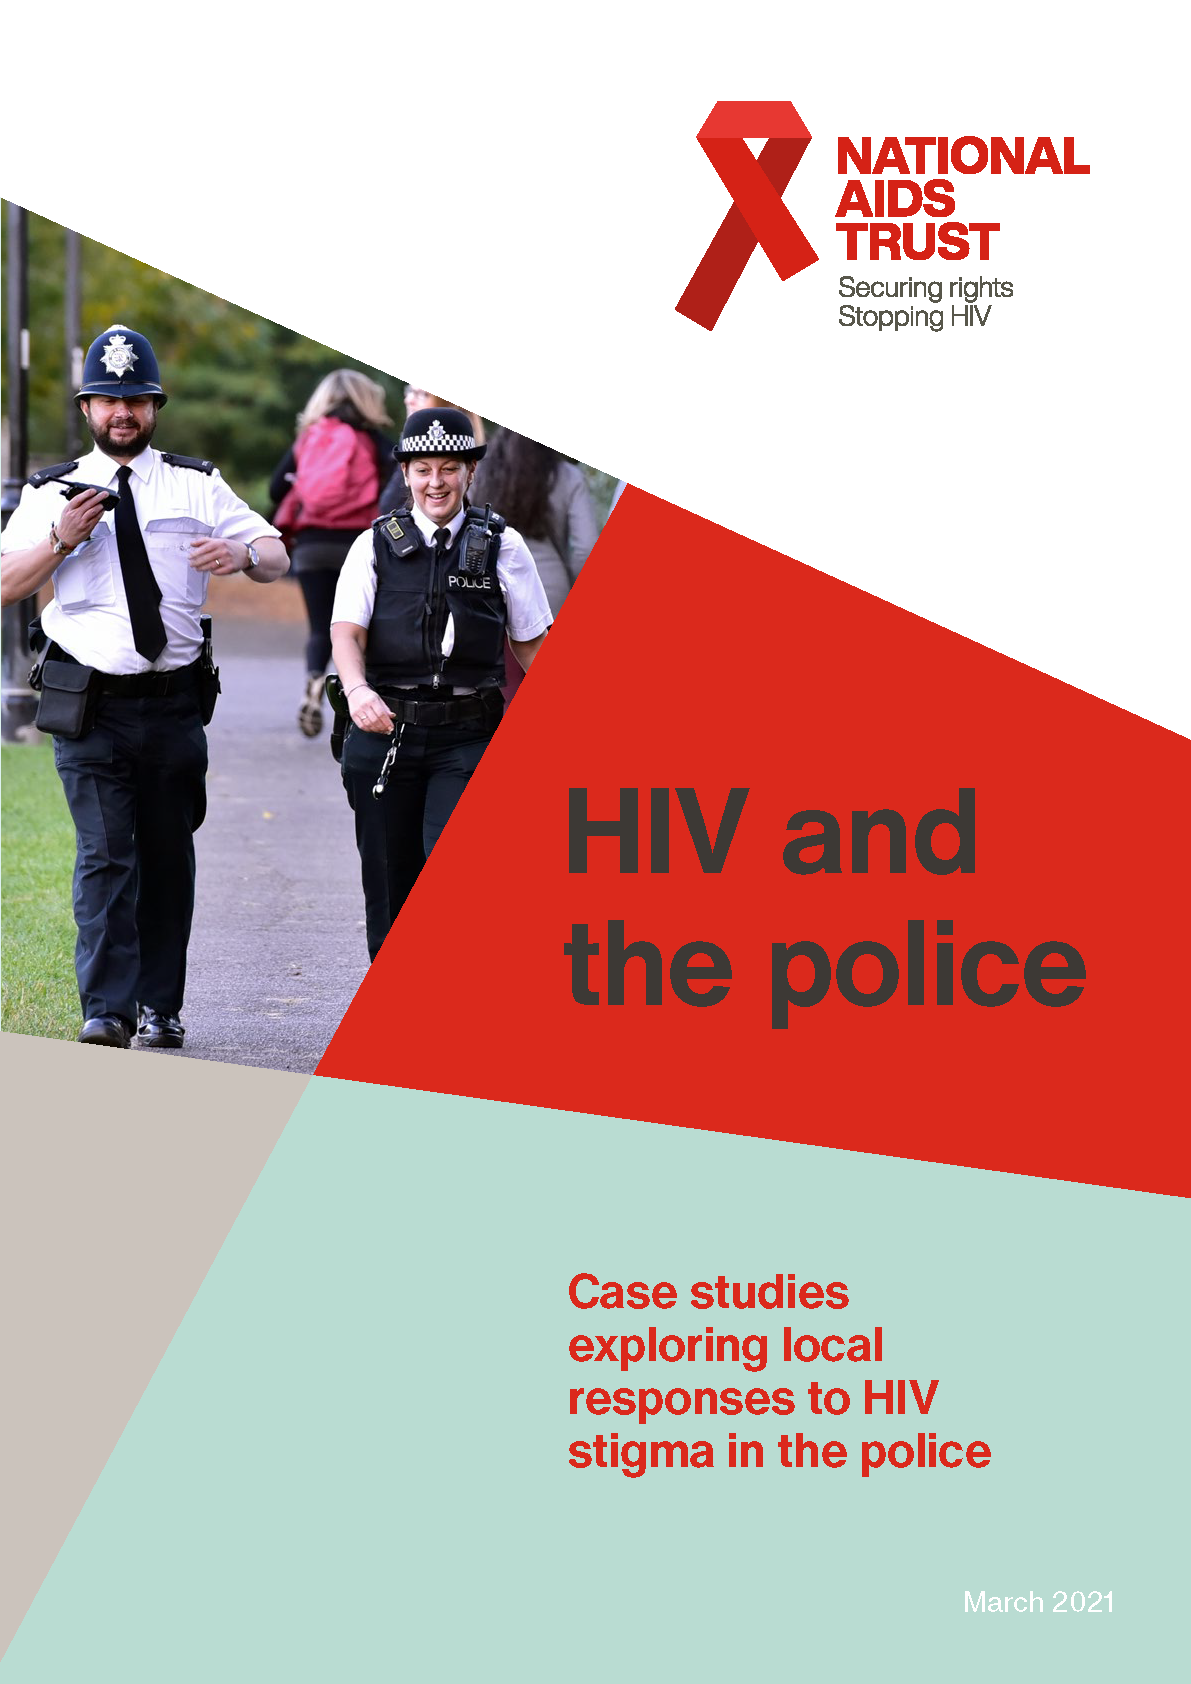 HIV and the police report image